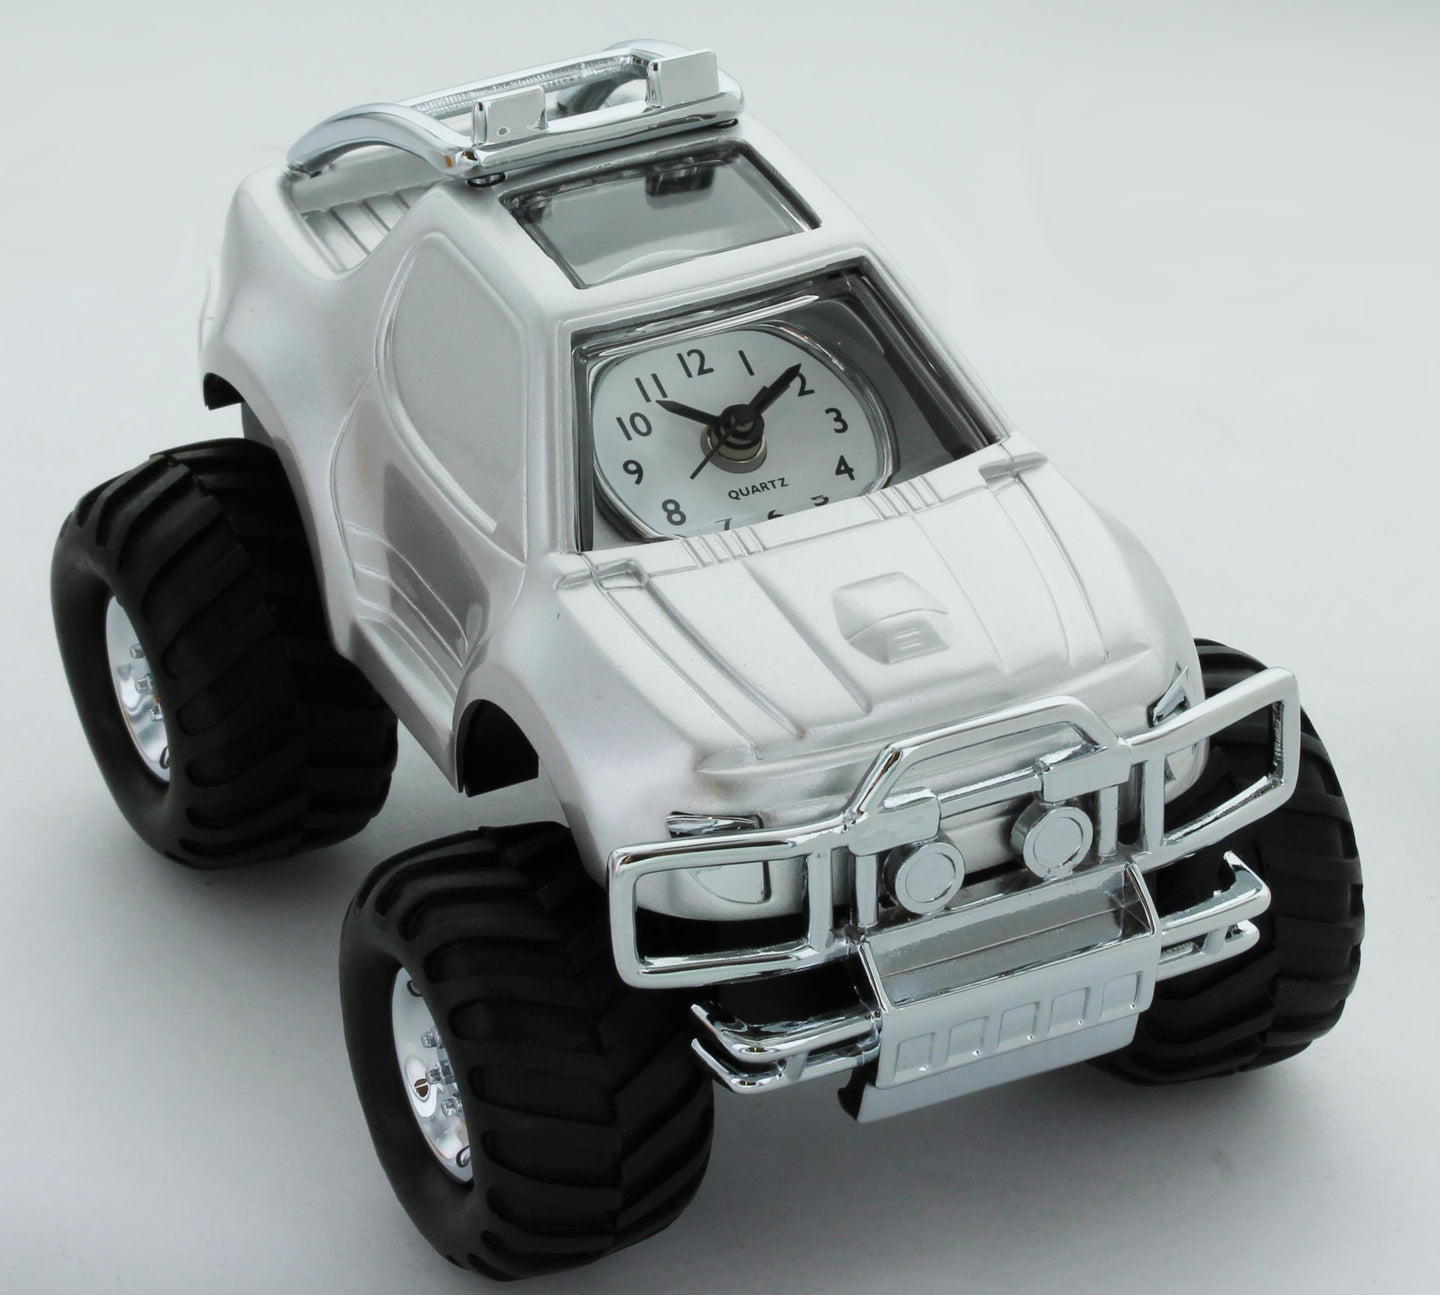 Miniature Classic suv Car Analogue Silver tone Novelty Alarm Clock Collectible AH6032